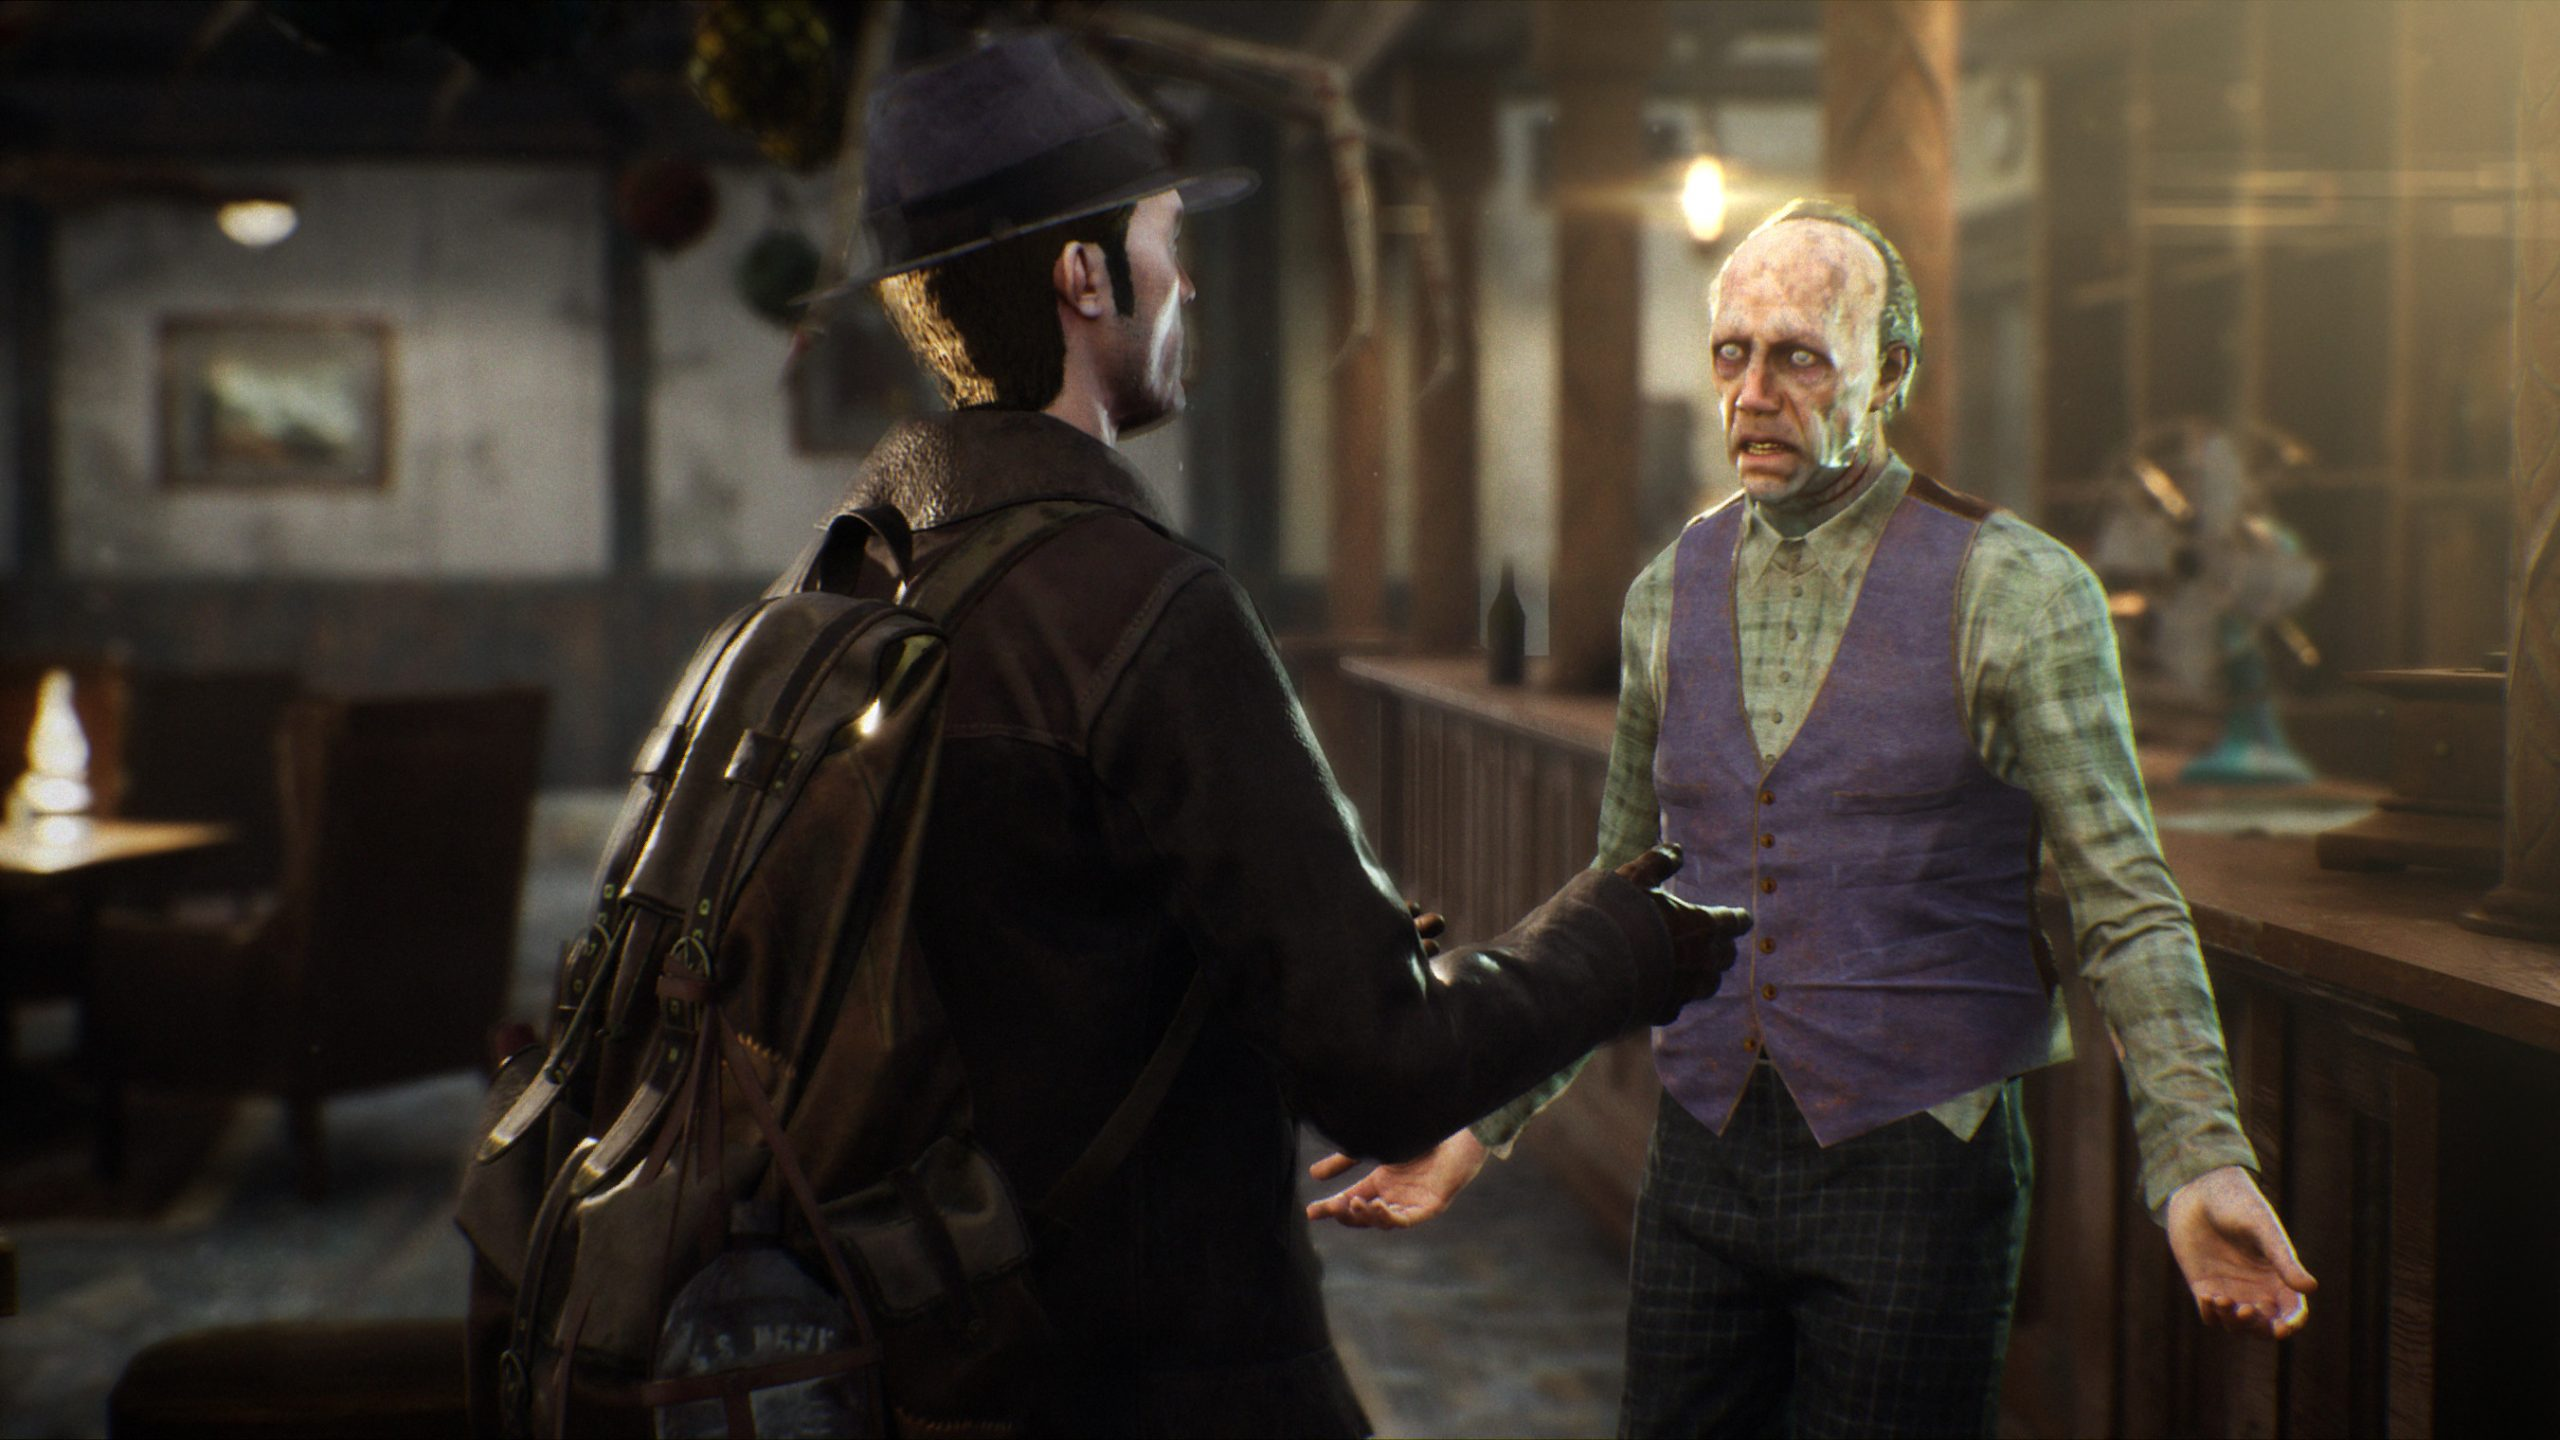 'The Sinking City' Developer Doesn't Desire You to Buy Their Sport on Steam